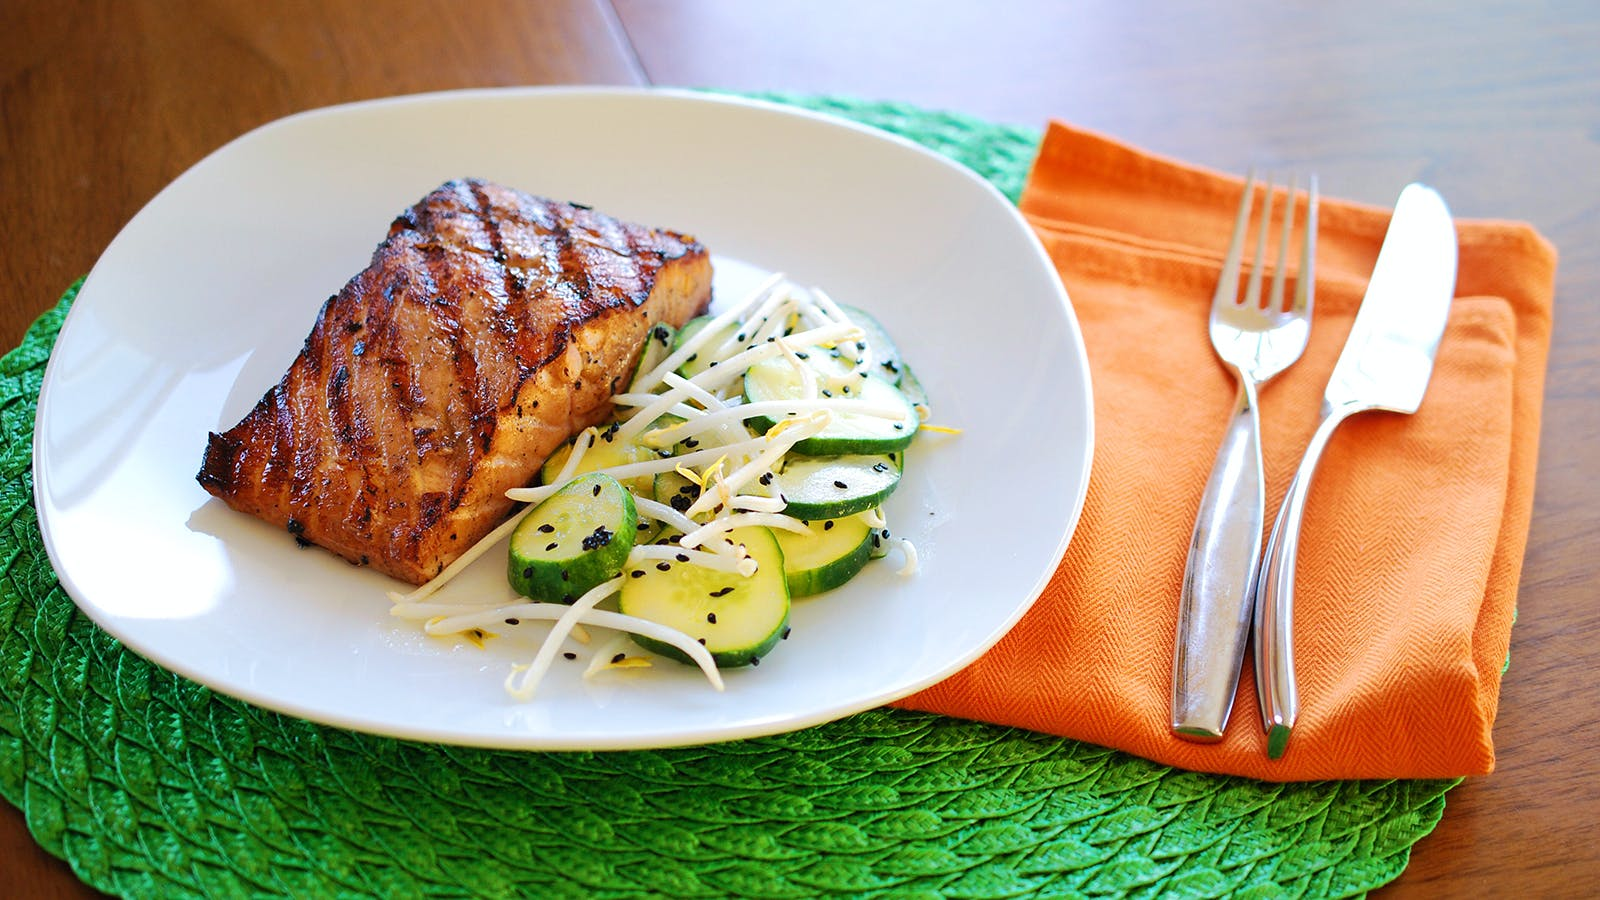 8 & $20: Miso-Sesame Salmon with Cucumber Salad